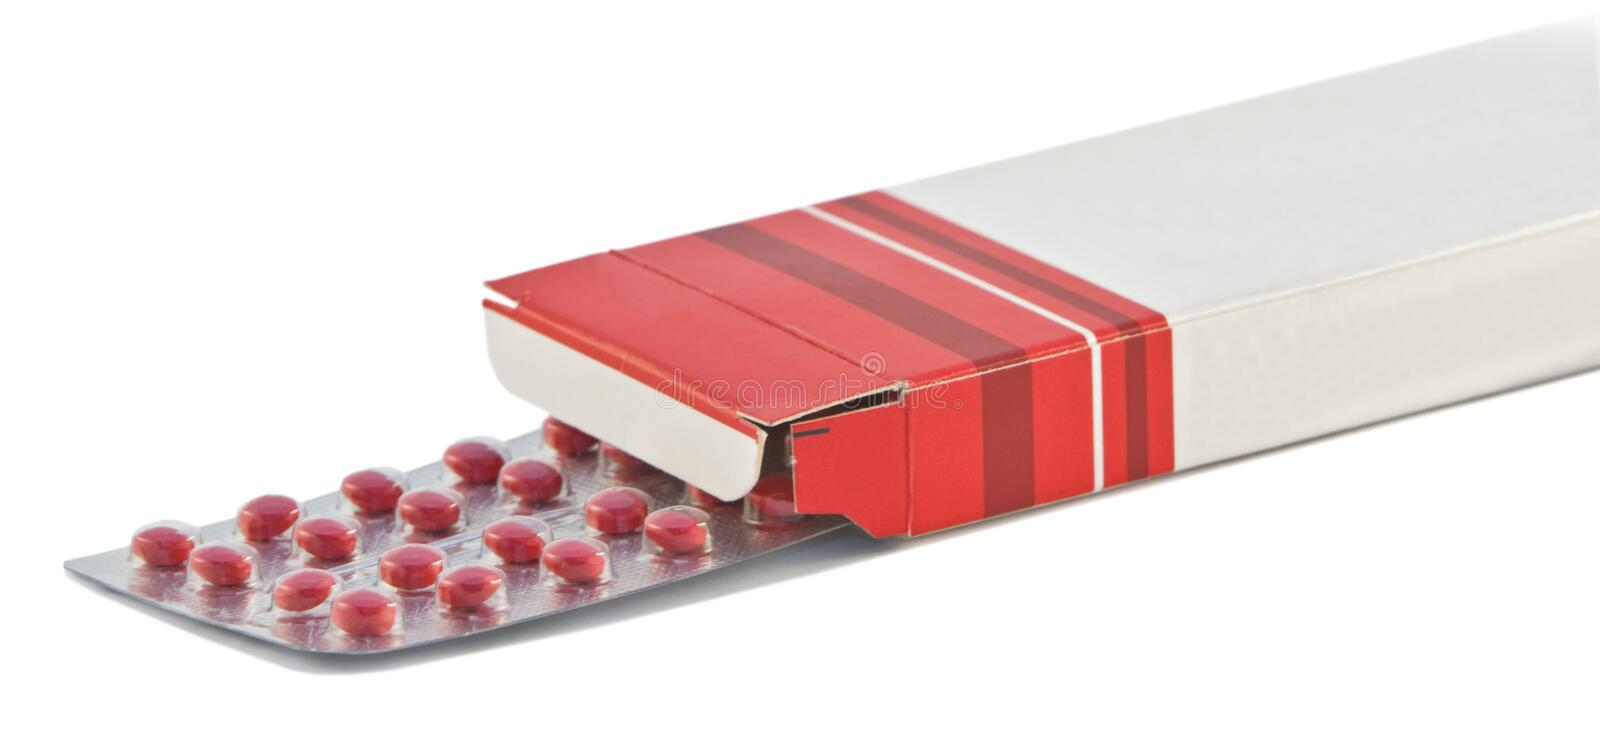 Pills box royalty free stock images